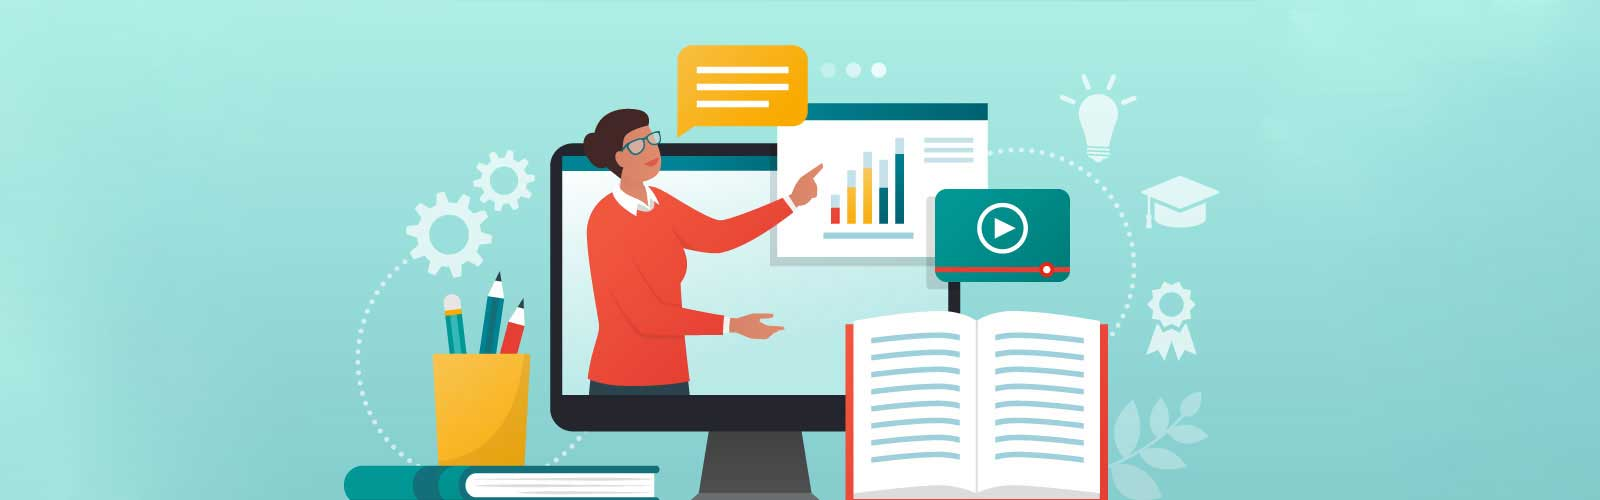 E-learning platform and distance learning illustration